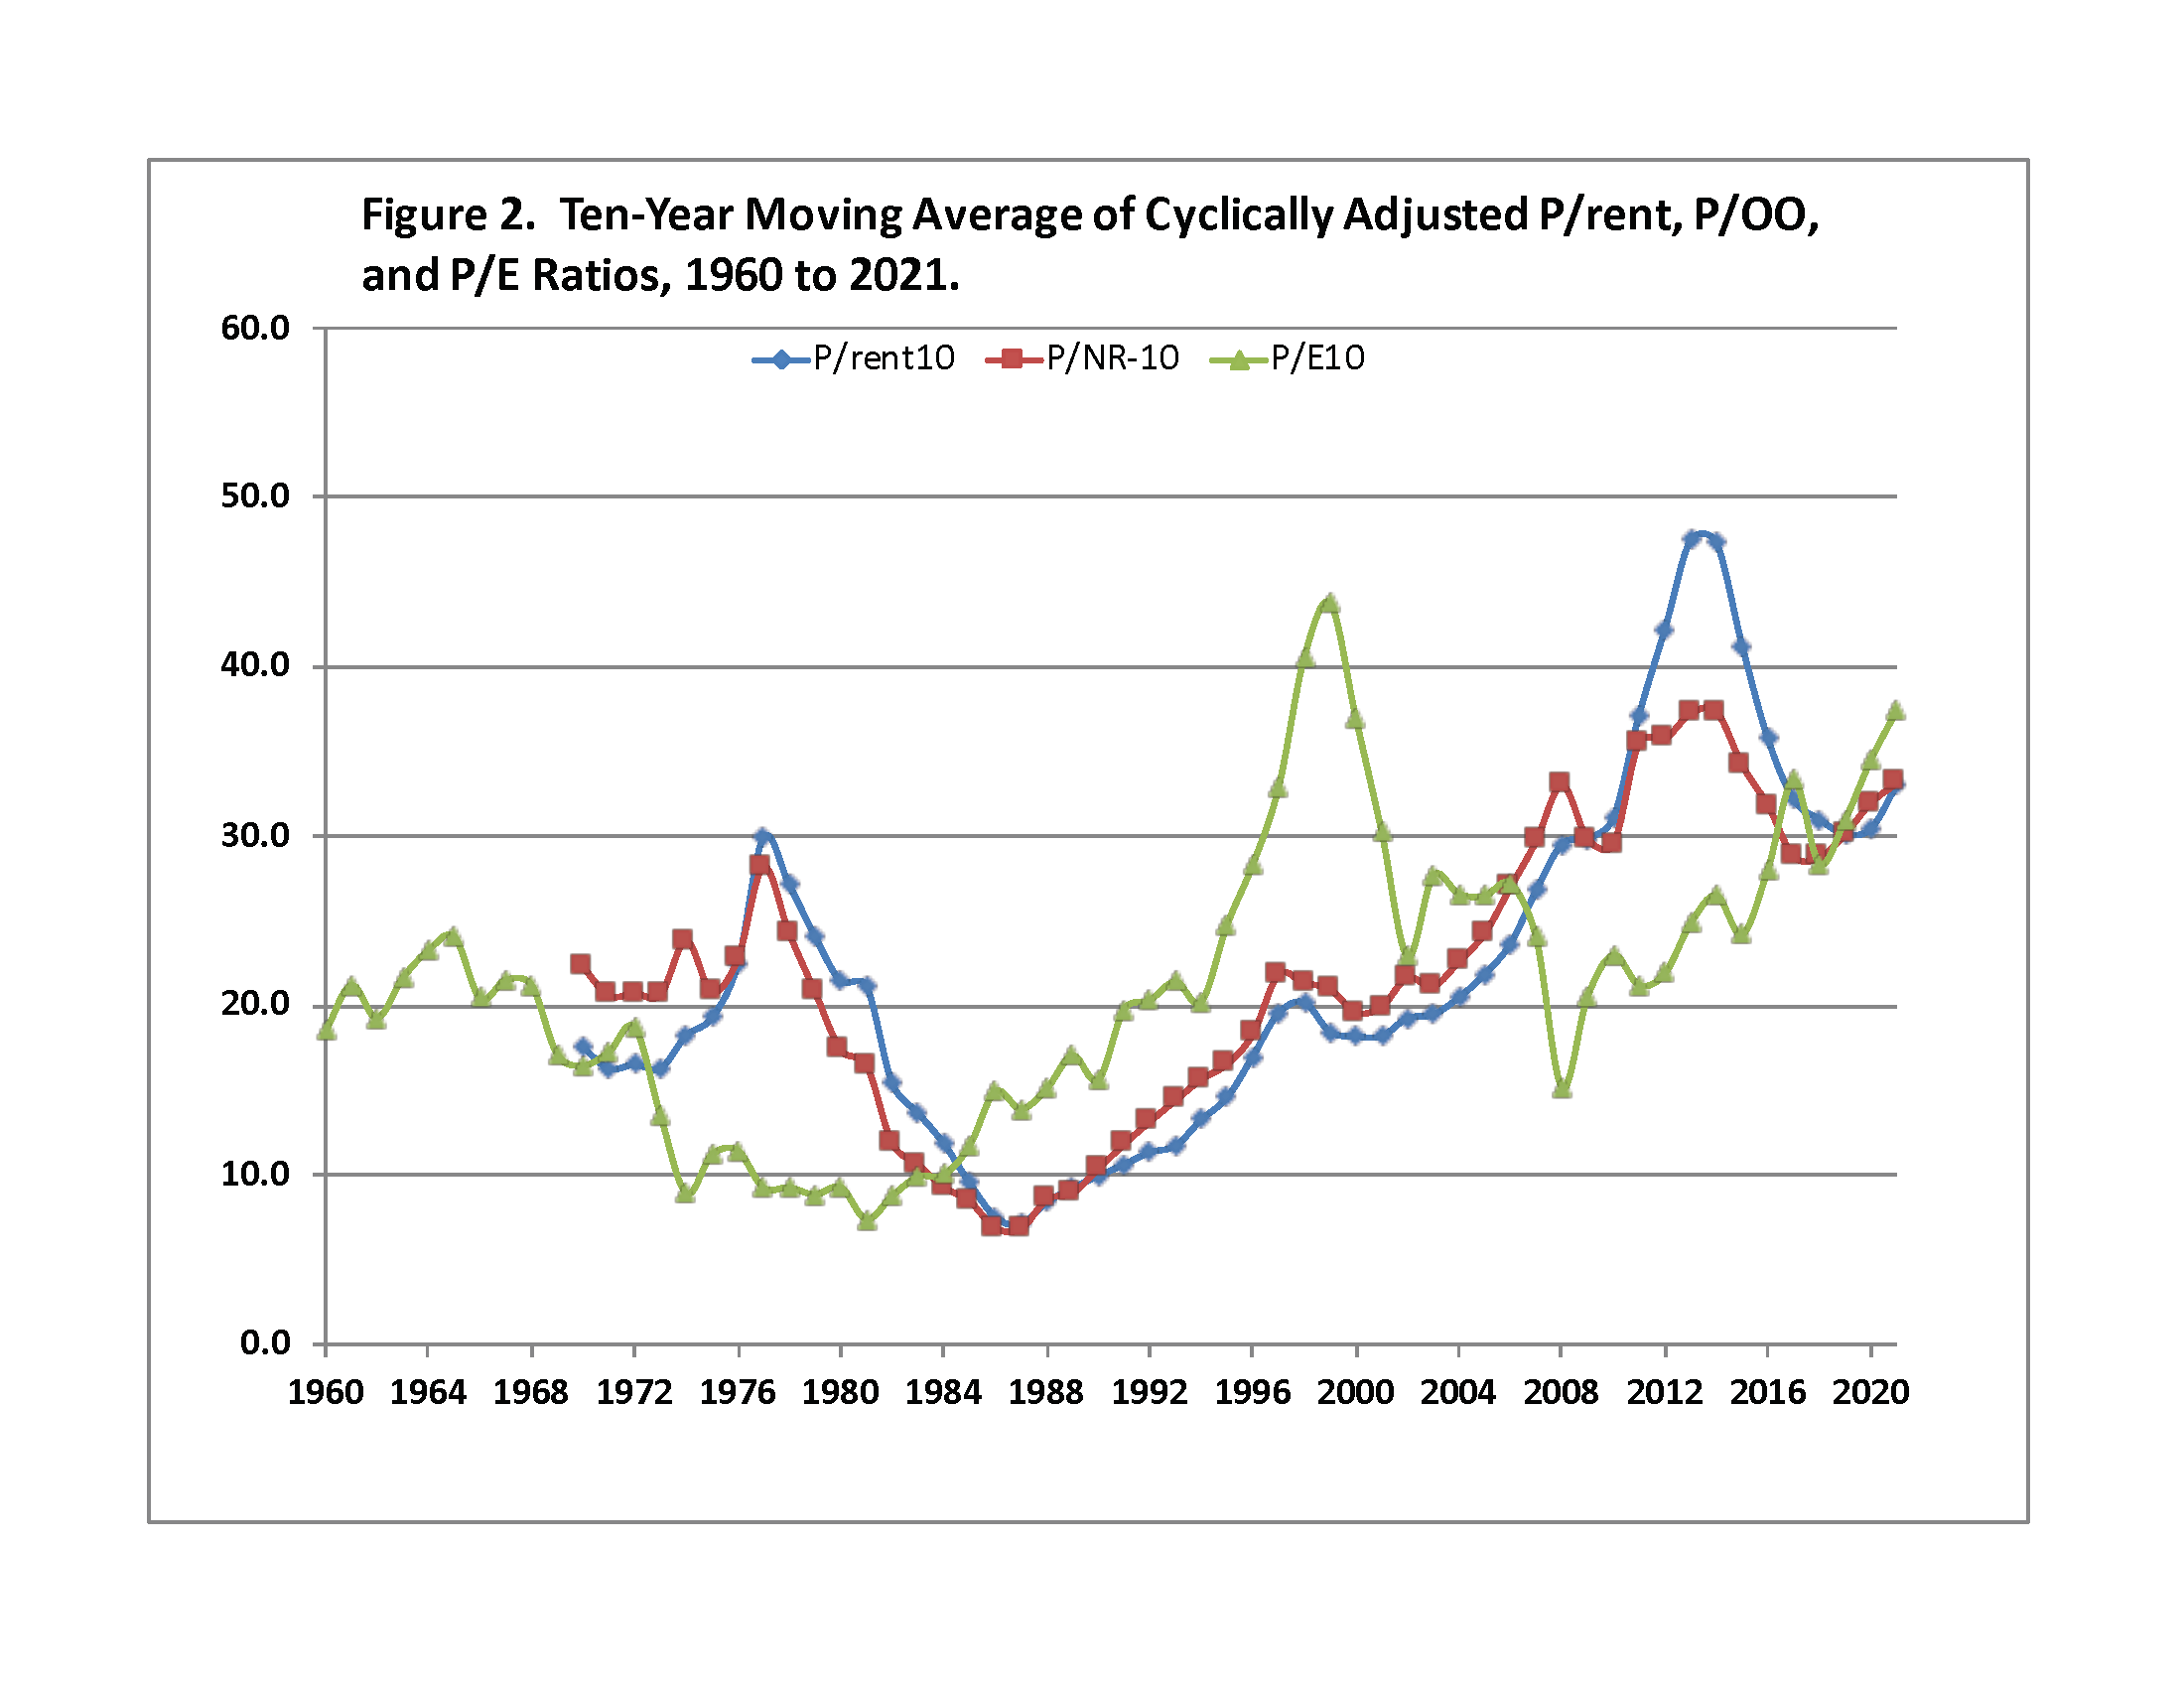 Figure 2. Ten-Year Moving Average of Cyclically Adjusted P/rent, P/OO, and P/E Ratios, 1960 to 2021.